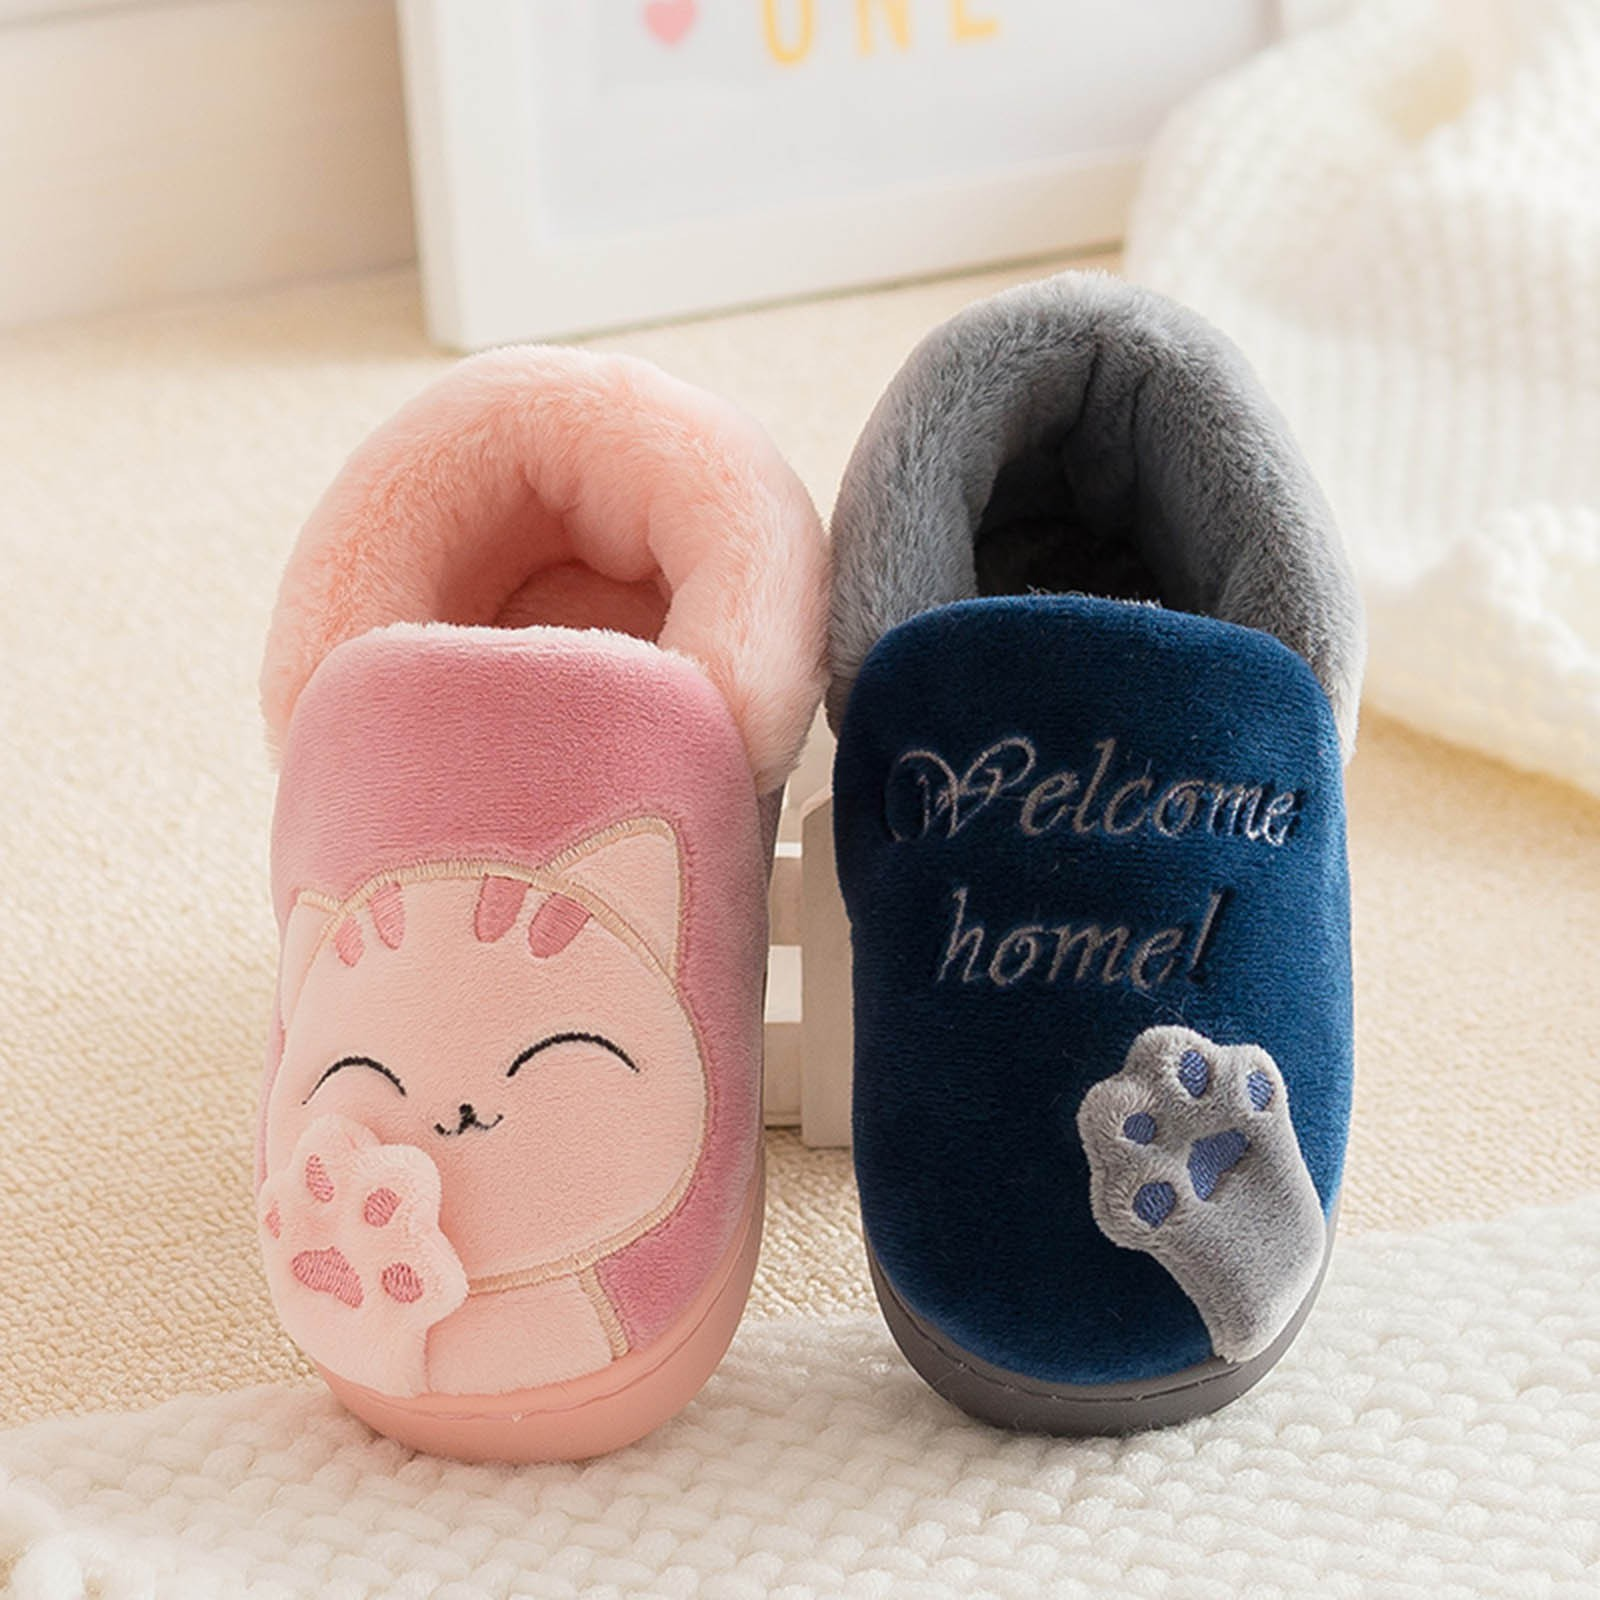 Kids Baby Boys Girls Winter Slippers Cartoon Cat Non-slip Home Indoors Shoes Cotton Warm Soft Sole P